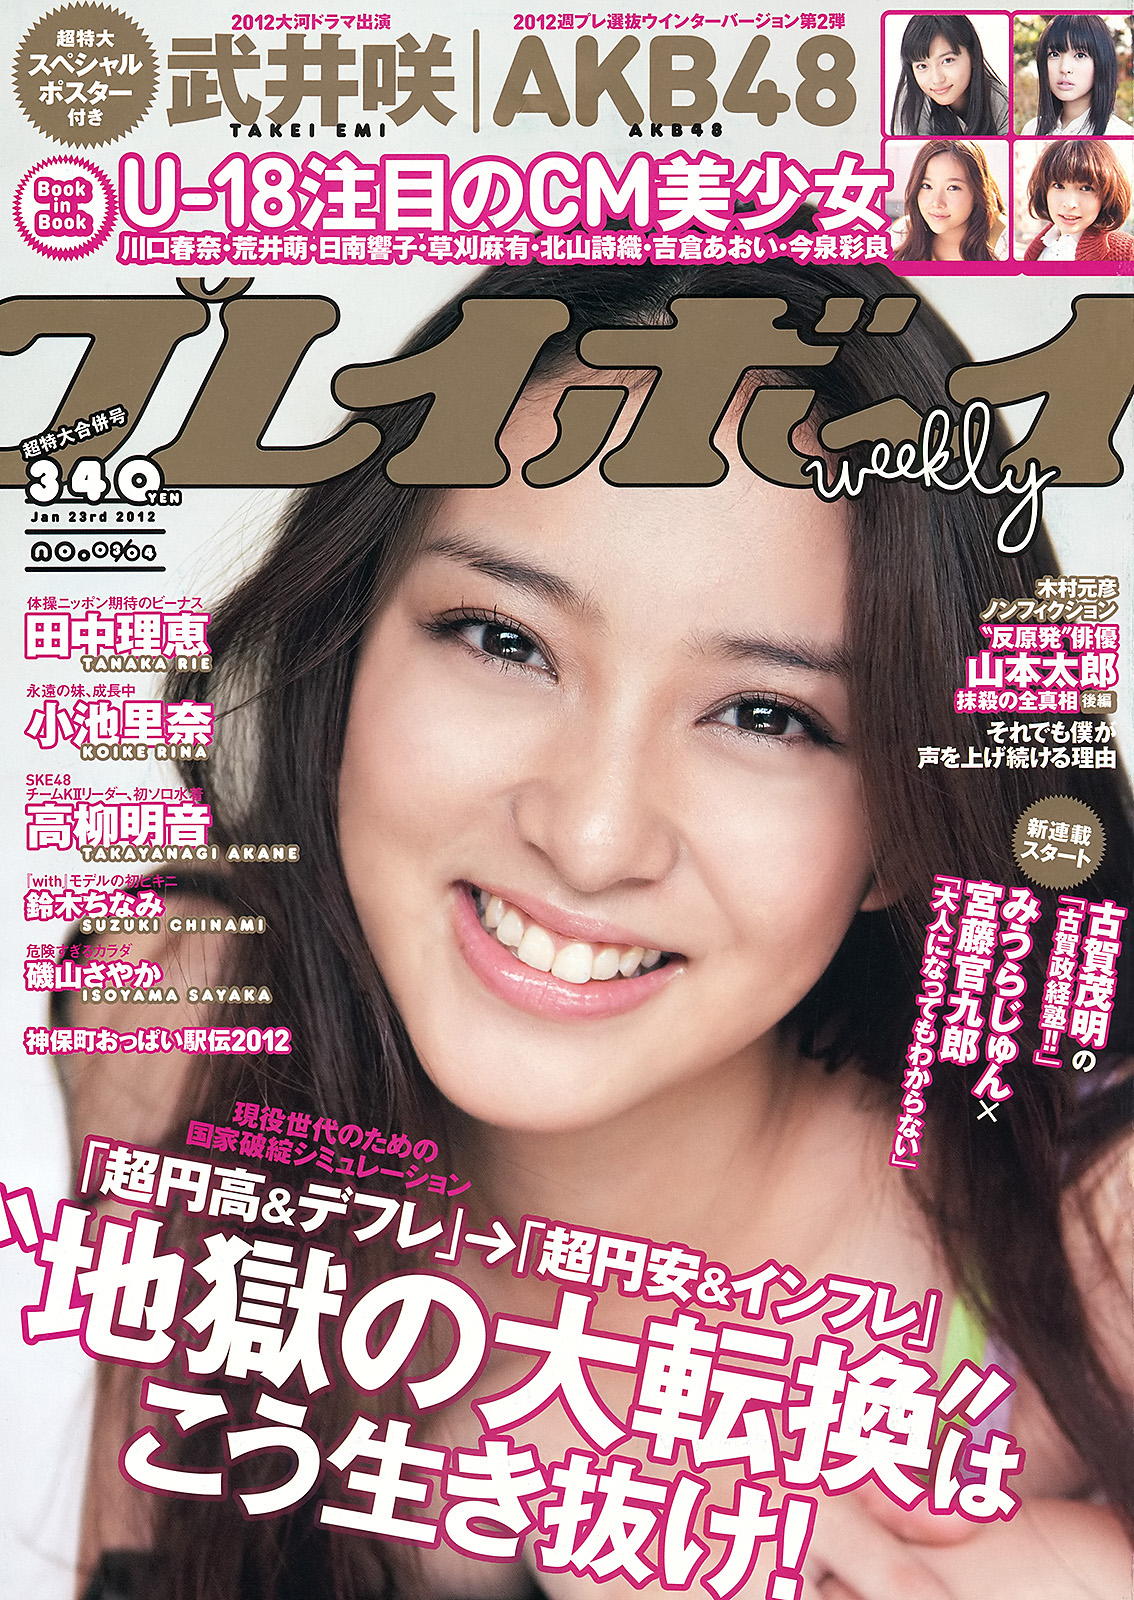 20151024.03.17 Weekly Playboy (2012.03-04) 001 (JPOP.ru).jpg